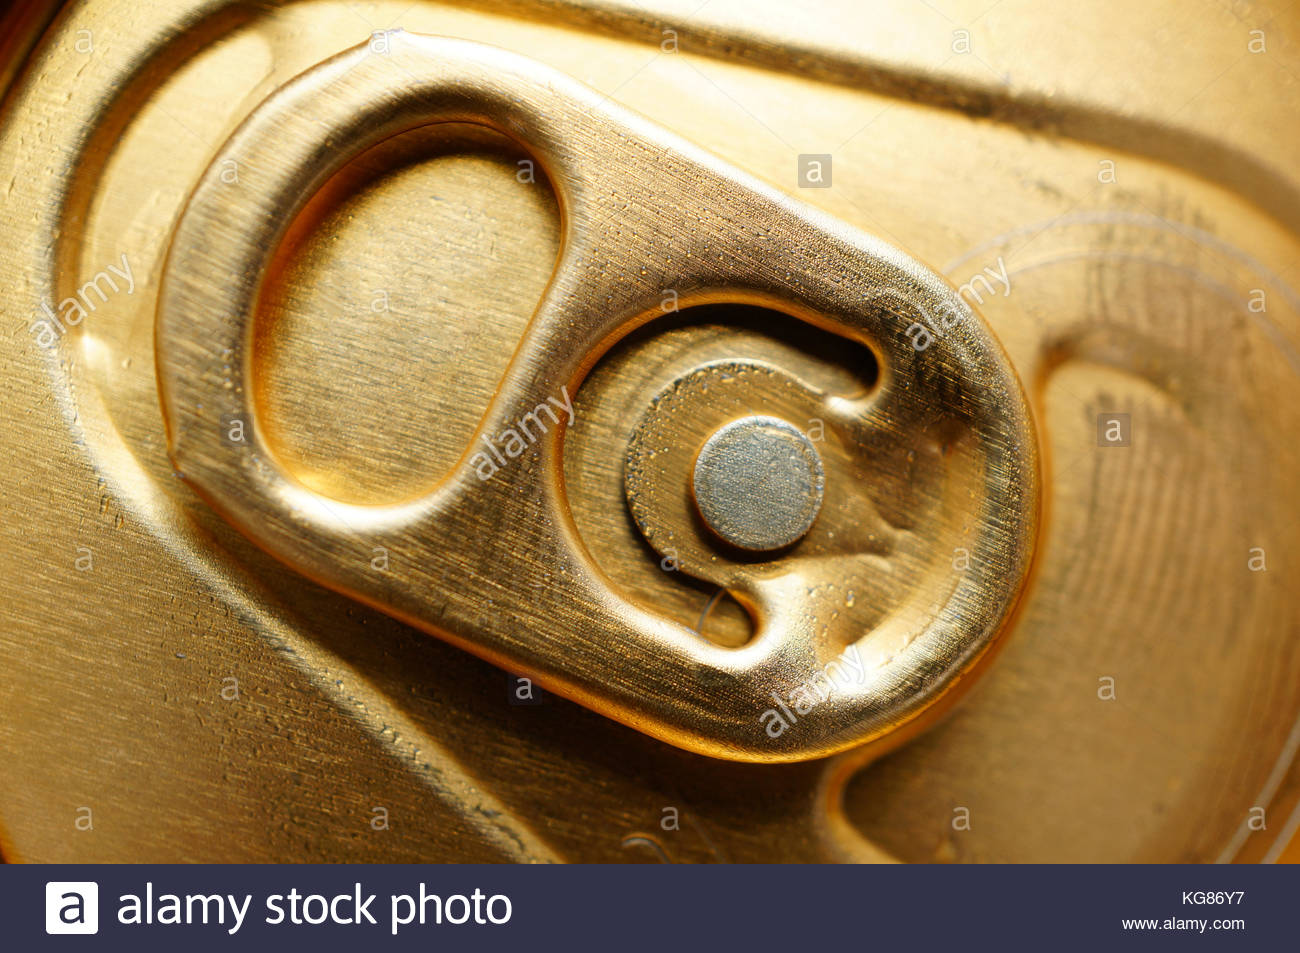 Detail of a beverage can with stay-tab - Stock Image